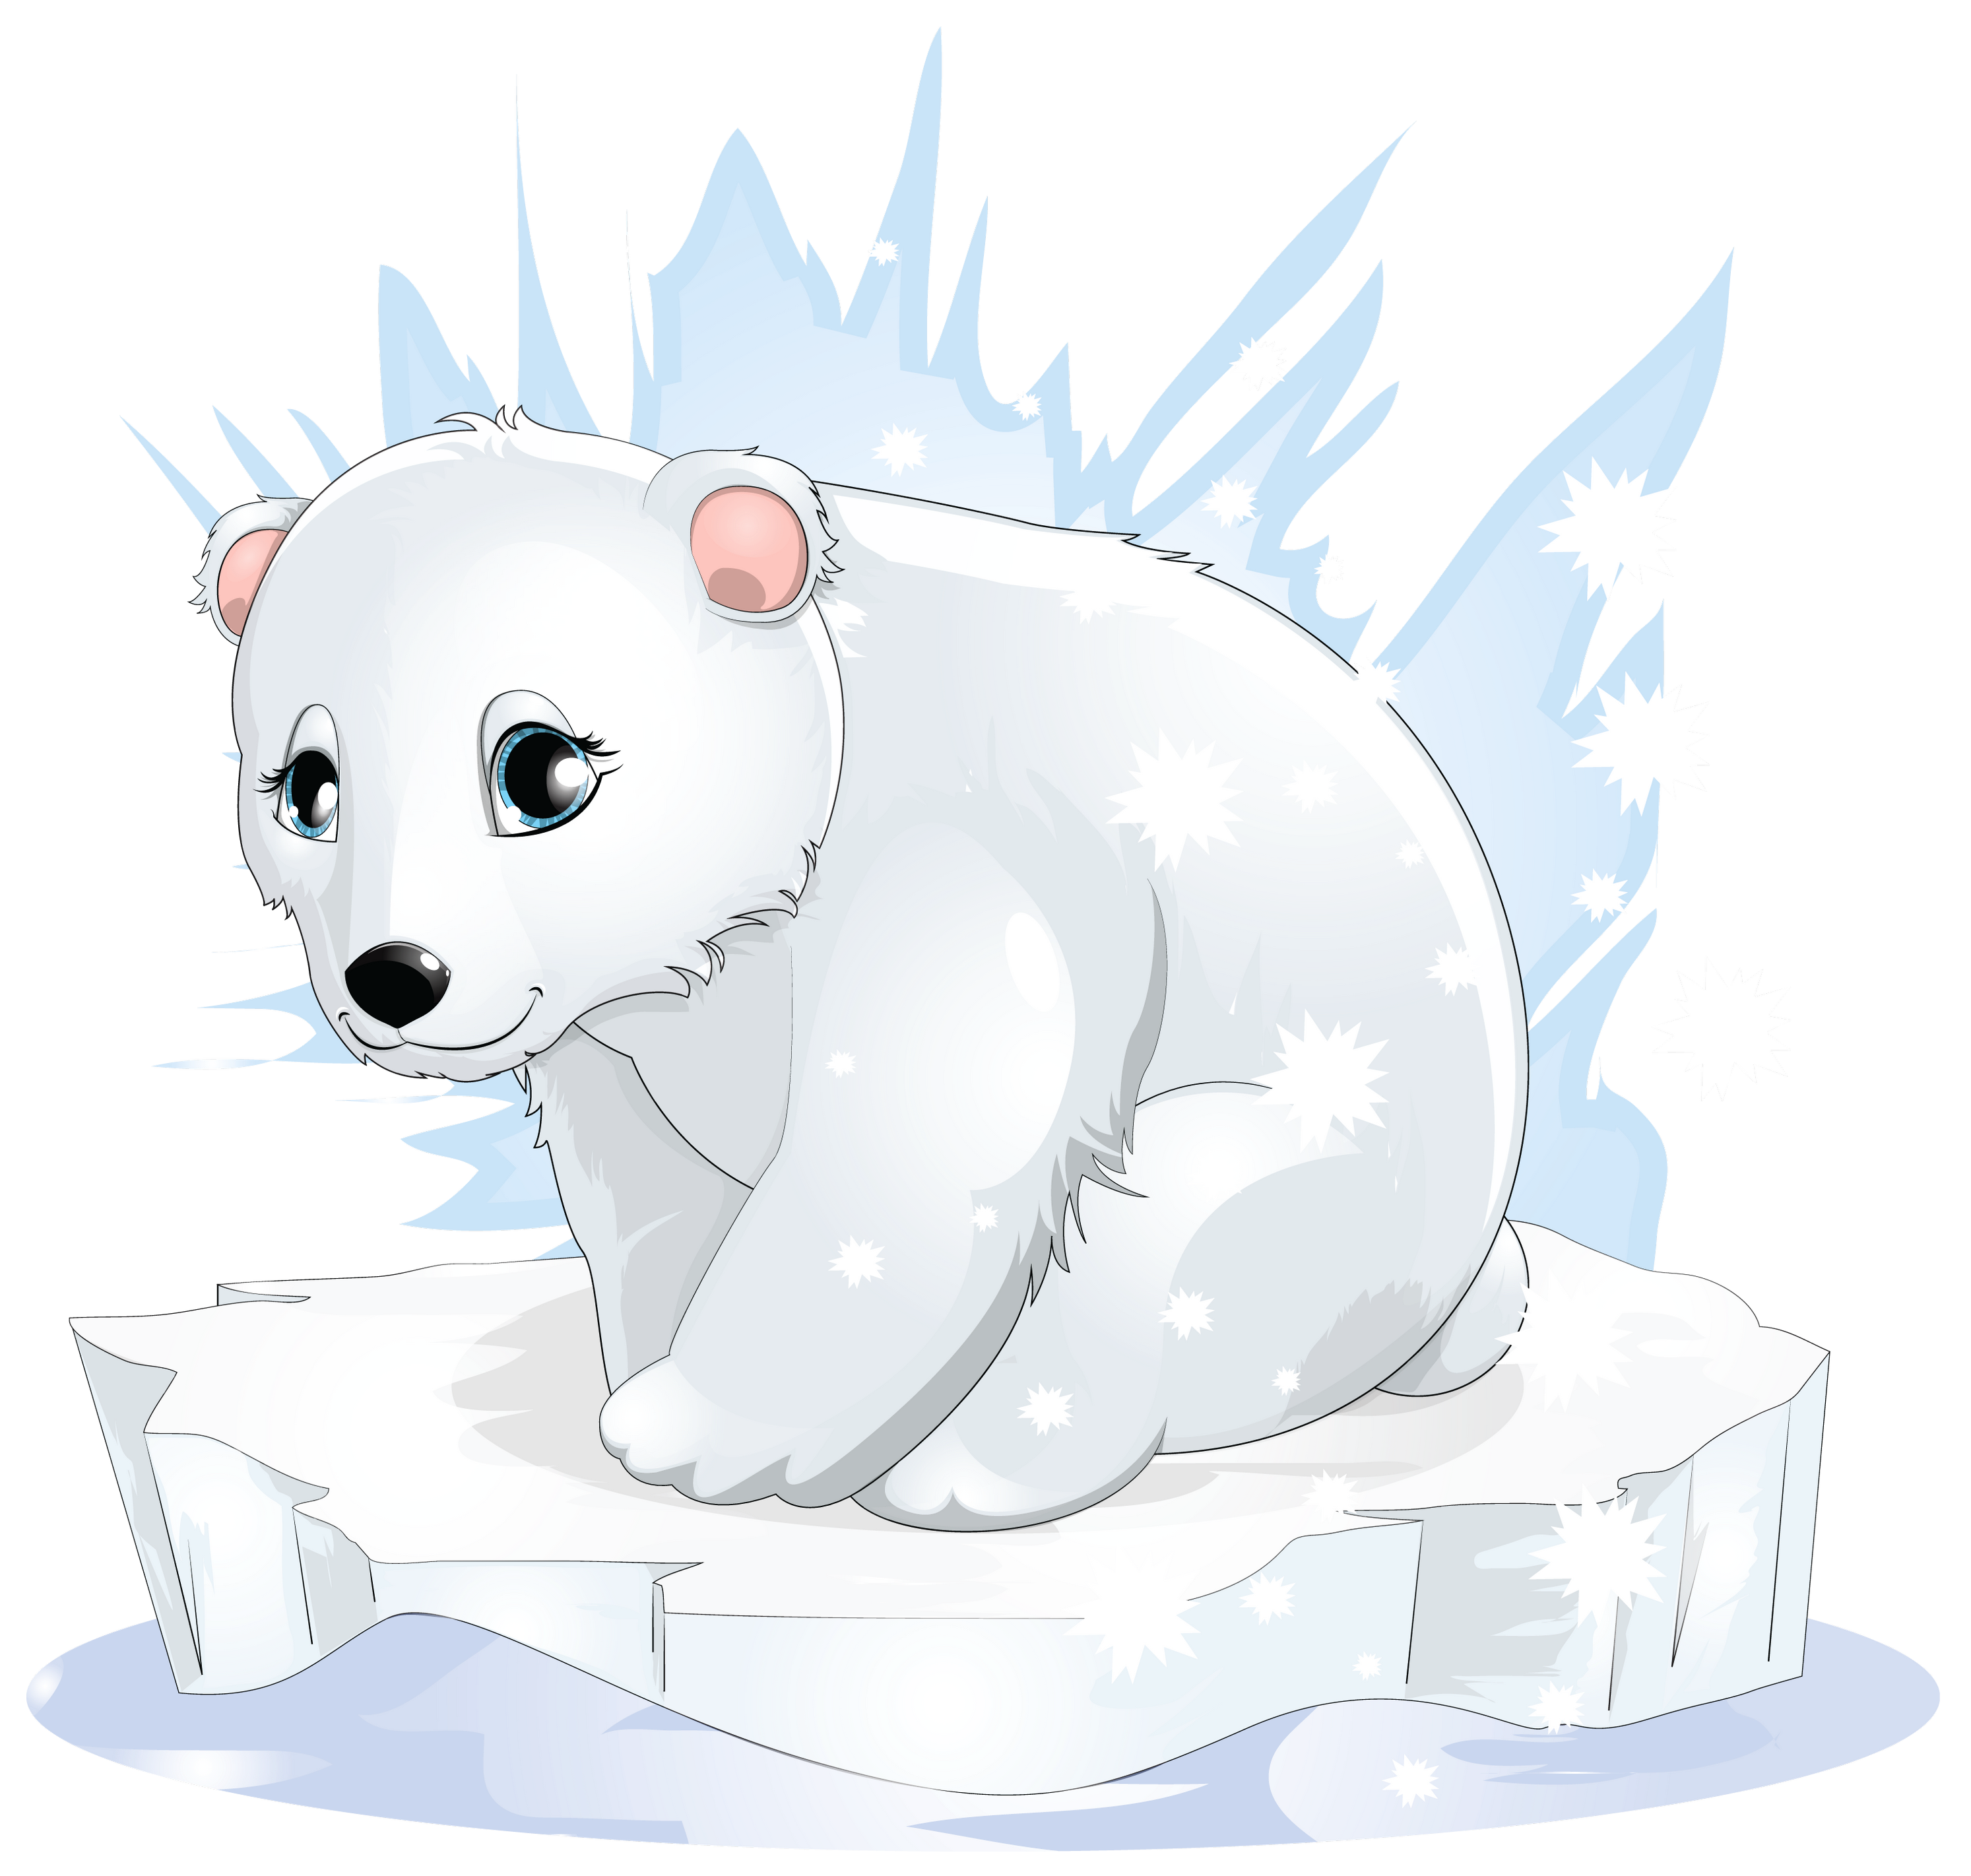 Transparent png gallery yopriceville. Bear clipart polar bear image royalty free download